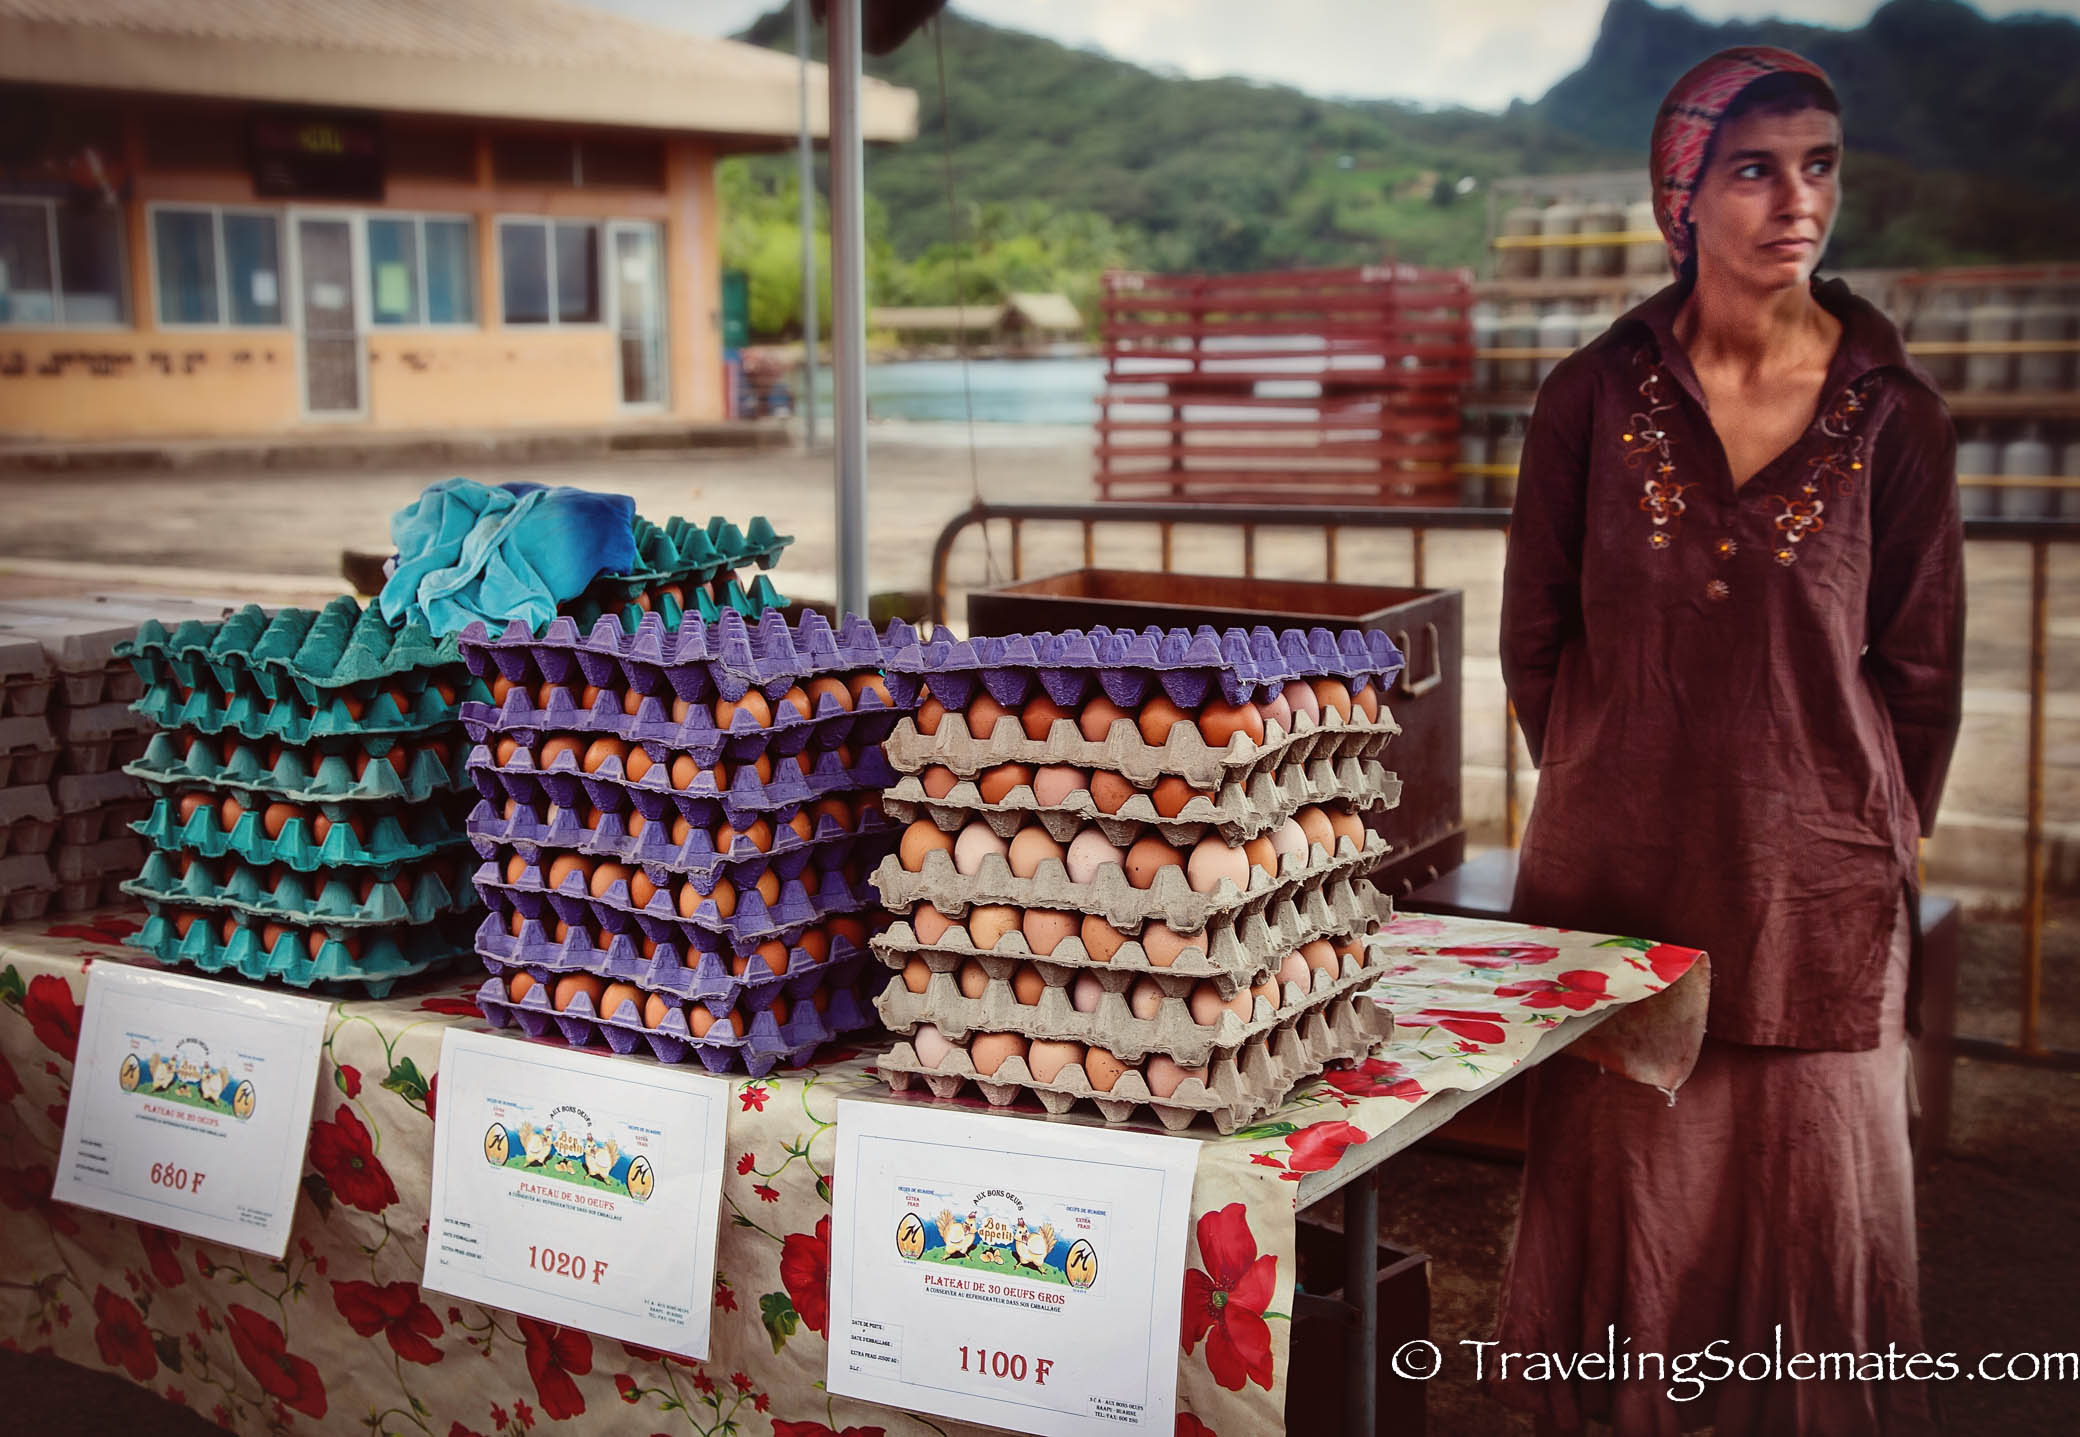 Egg Vendor at Market in Town of Fare, Huahine, French Polynesia, South Pacific